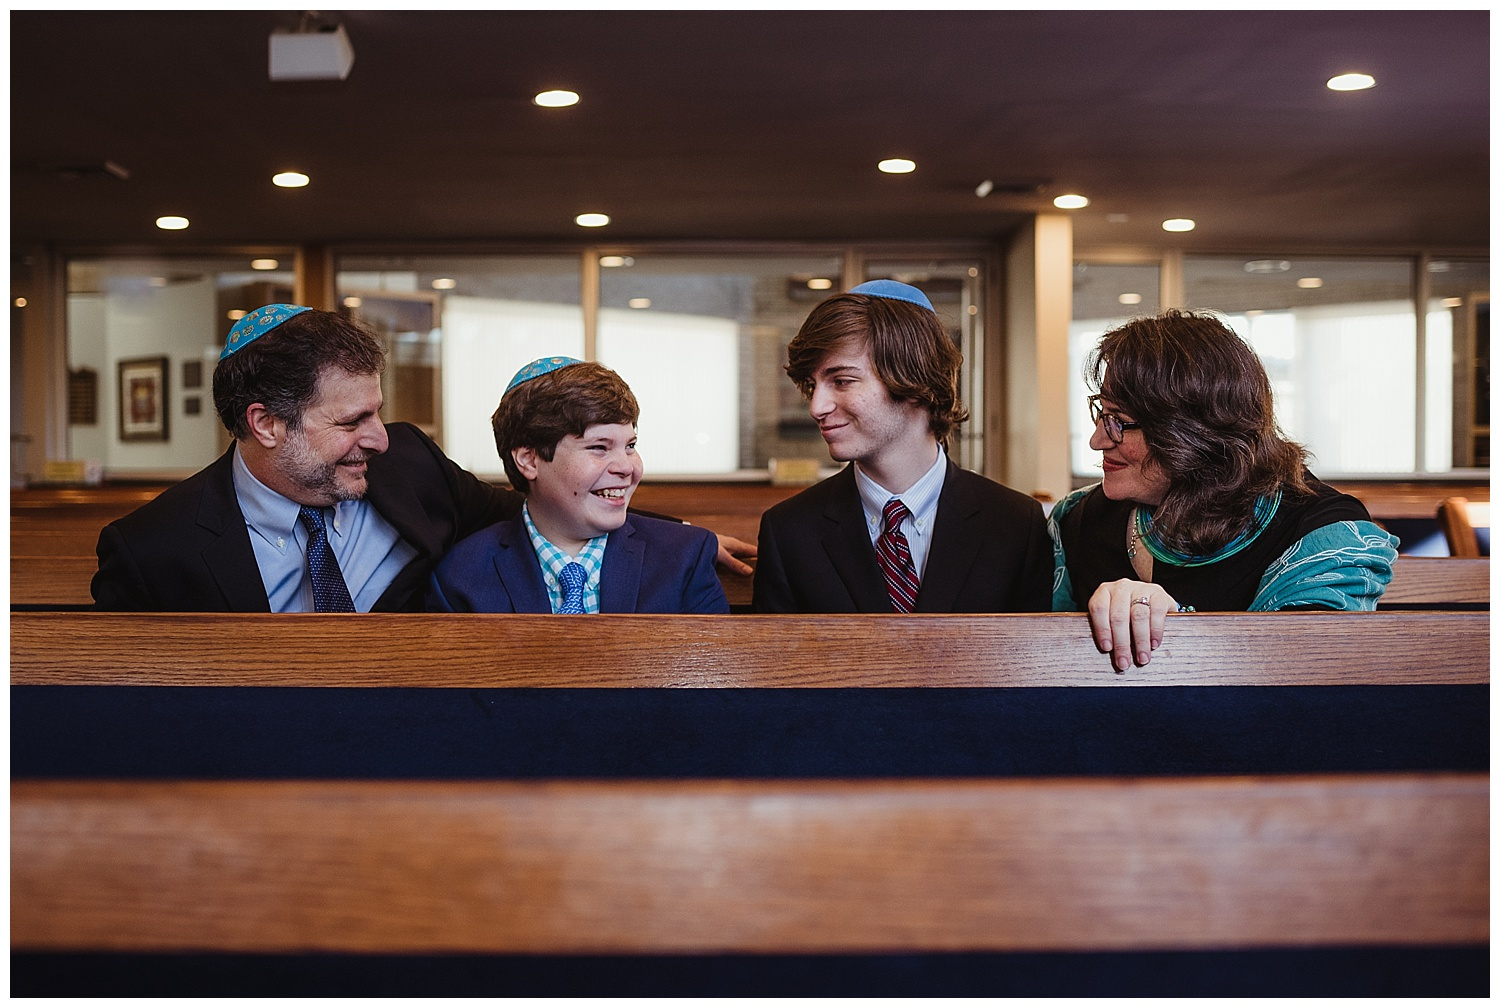 The family sits at the pew before their son becomes bar mitzvah at Temple Beth Or in Raleigh, NC.